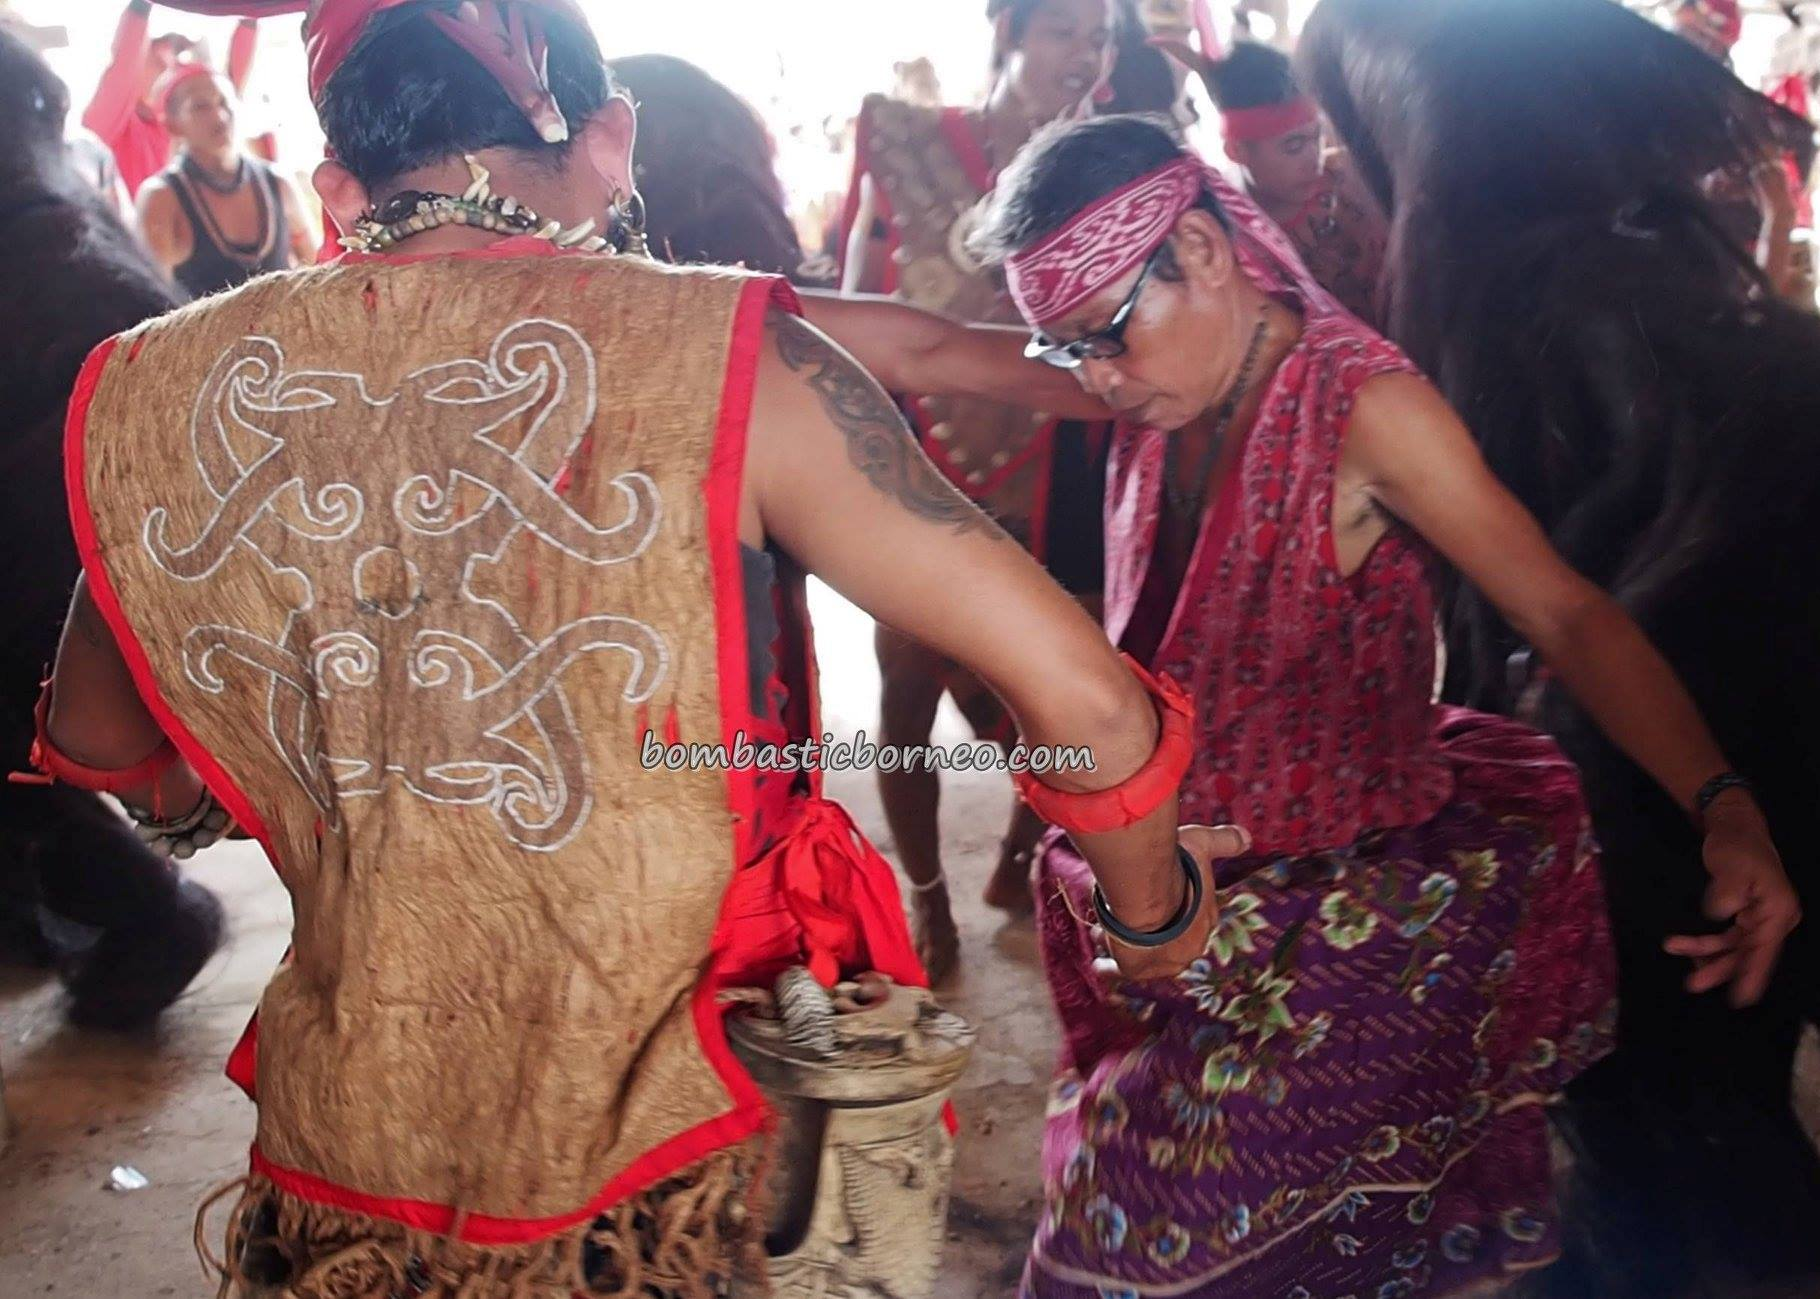 longhouse, Gawai Dayak Sanggau, authentic, event, indigenous, traditional, backpackers, West Kalimantan, ethnic, Obyek wisata, Tourism, travel guide, trans borneo, 印尼西加里曼丹, 婆罗洲传统土著文化